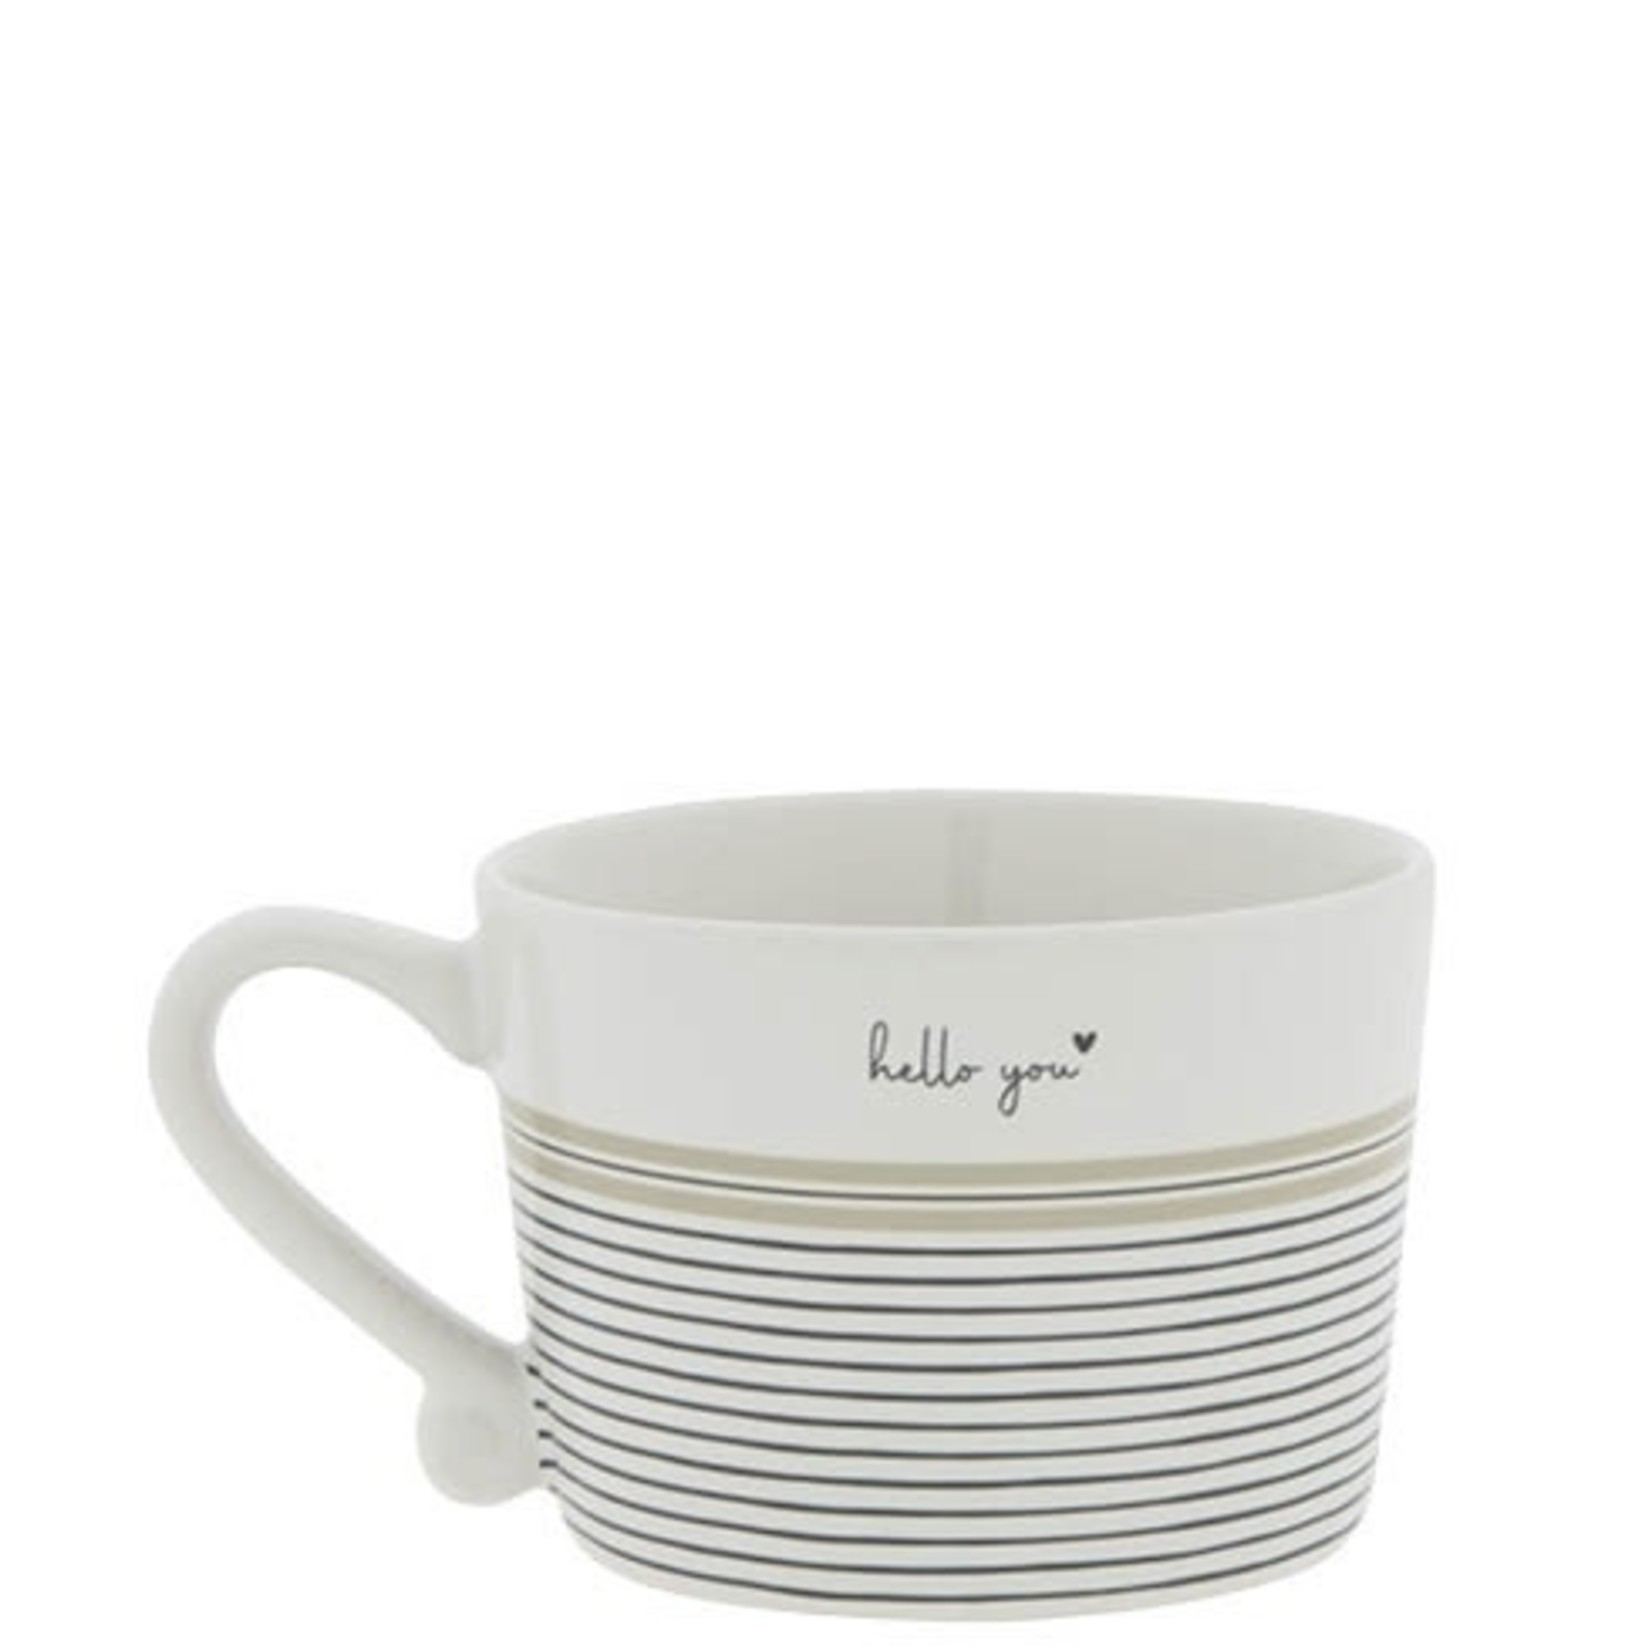 Bastion Collections Cup Coffee / Hello You stripes white/black/titane 8,5x7x6 cm